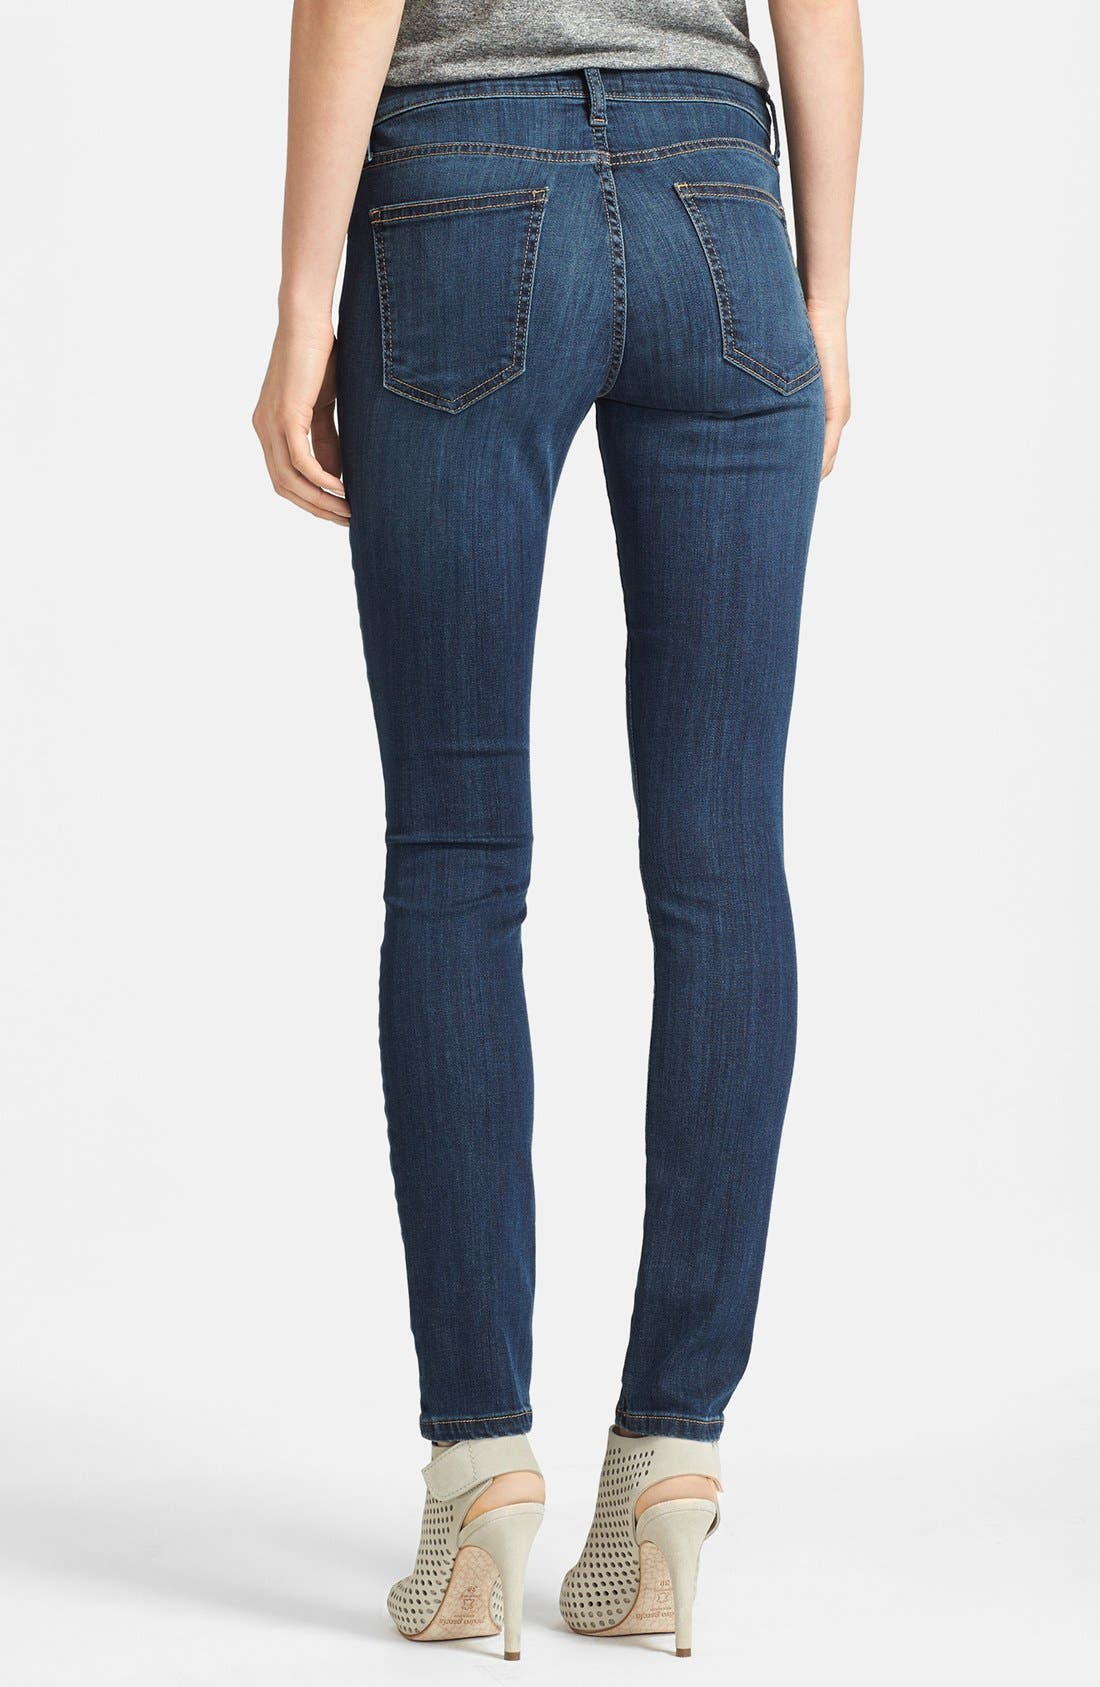 Alternate Image 2  - Current/Elliott 'The Ankle' Skinny Jeans (Stagecoach)